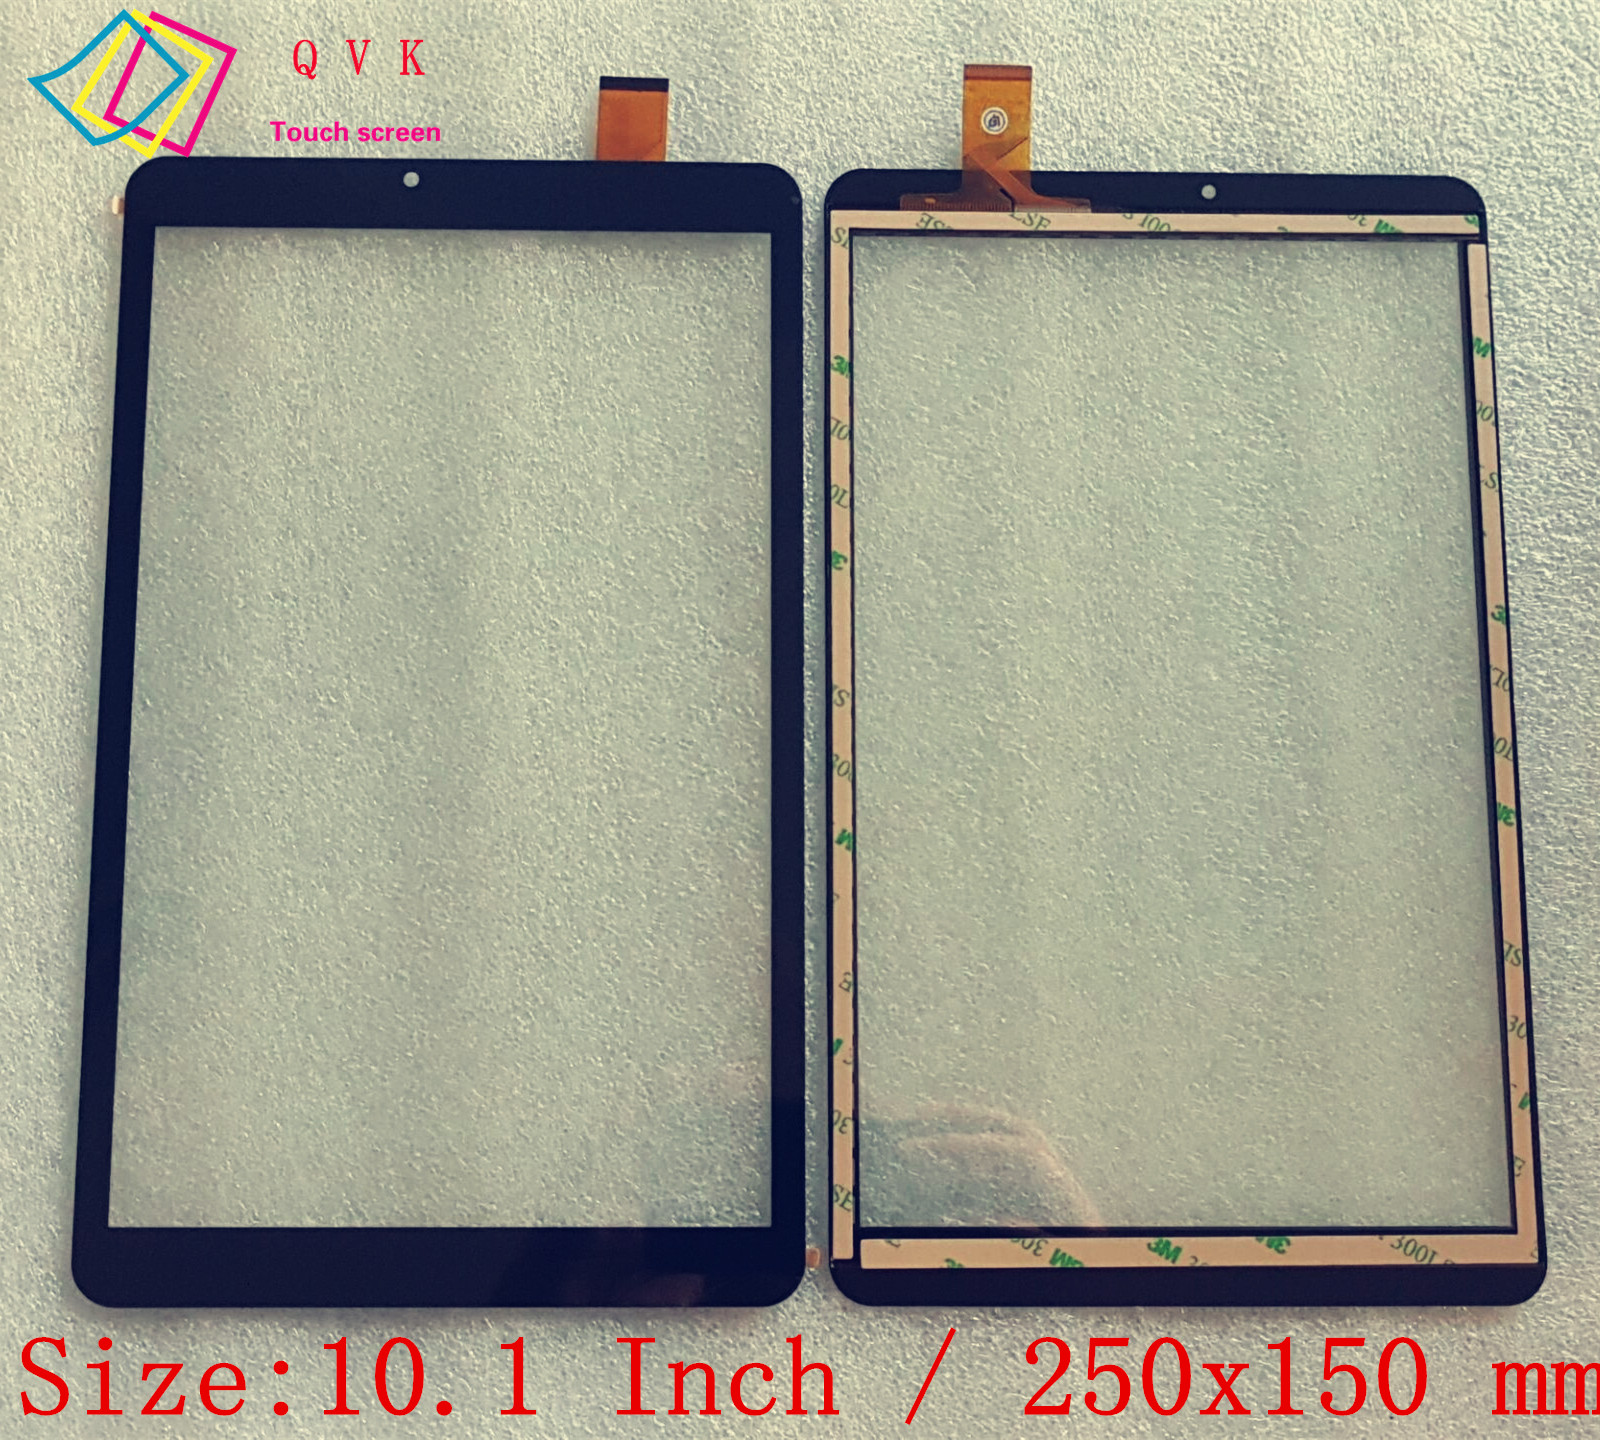 Black 10.1 Inch for DEXP Ursus NS210 tablet pc capacitive touch screen glass digitizer panel Free shipping new dexp ursus 8ev mini 3g touch screen dexp ursus 8ev mini 3g digitizer glass sensor free shipping